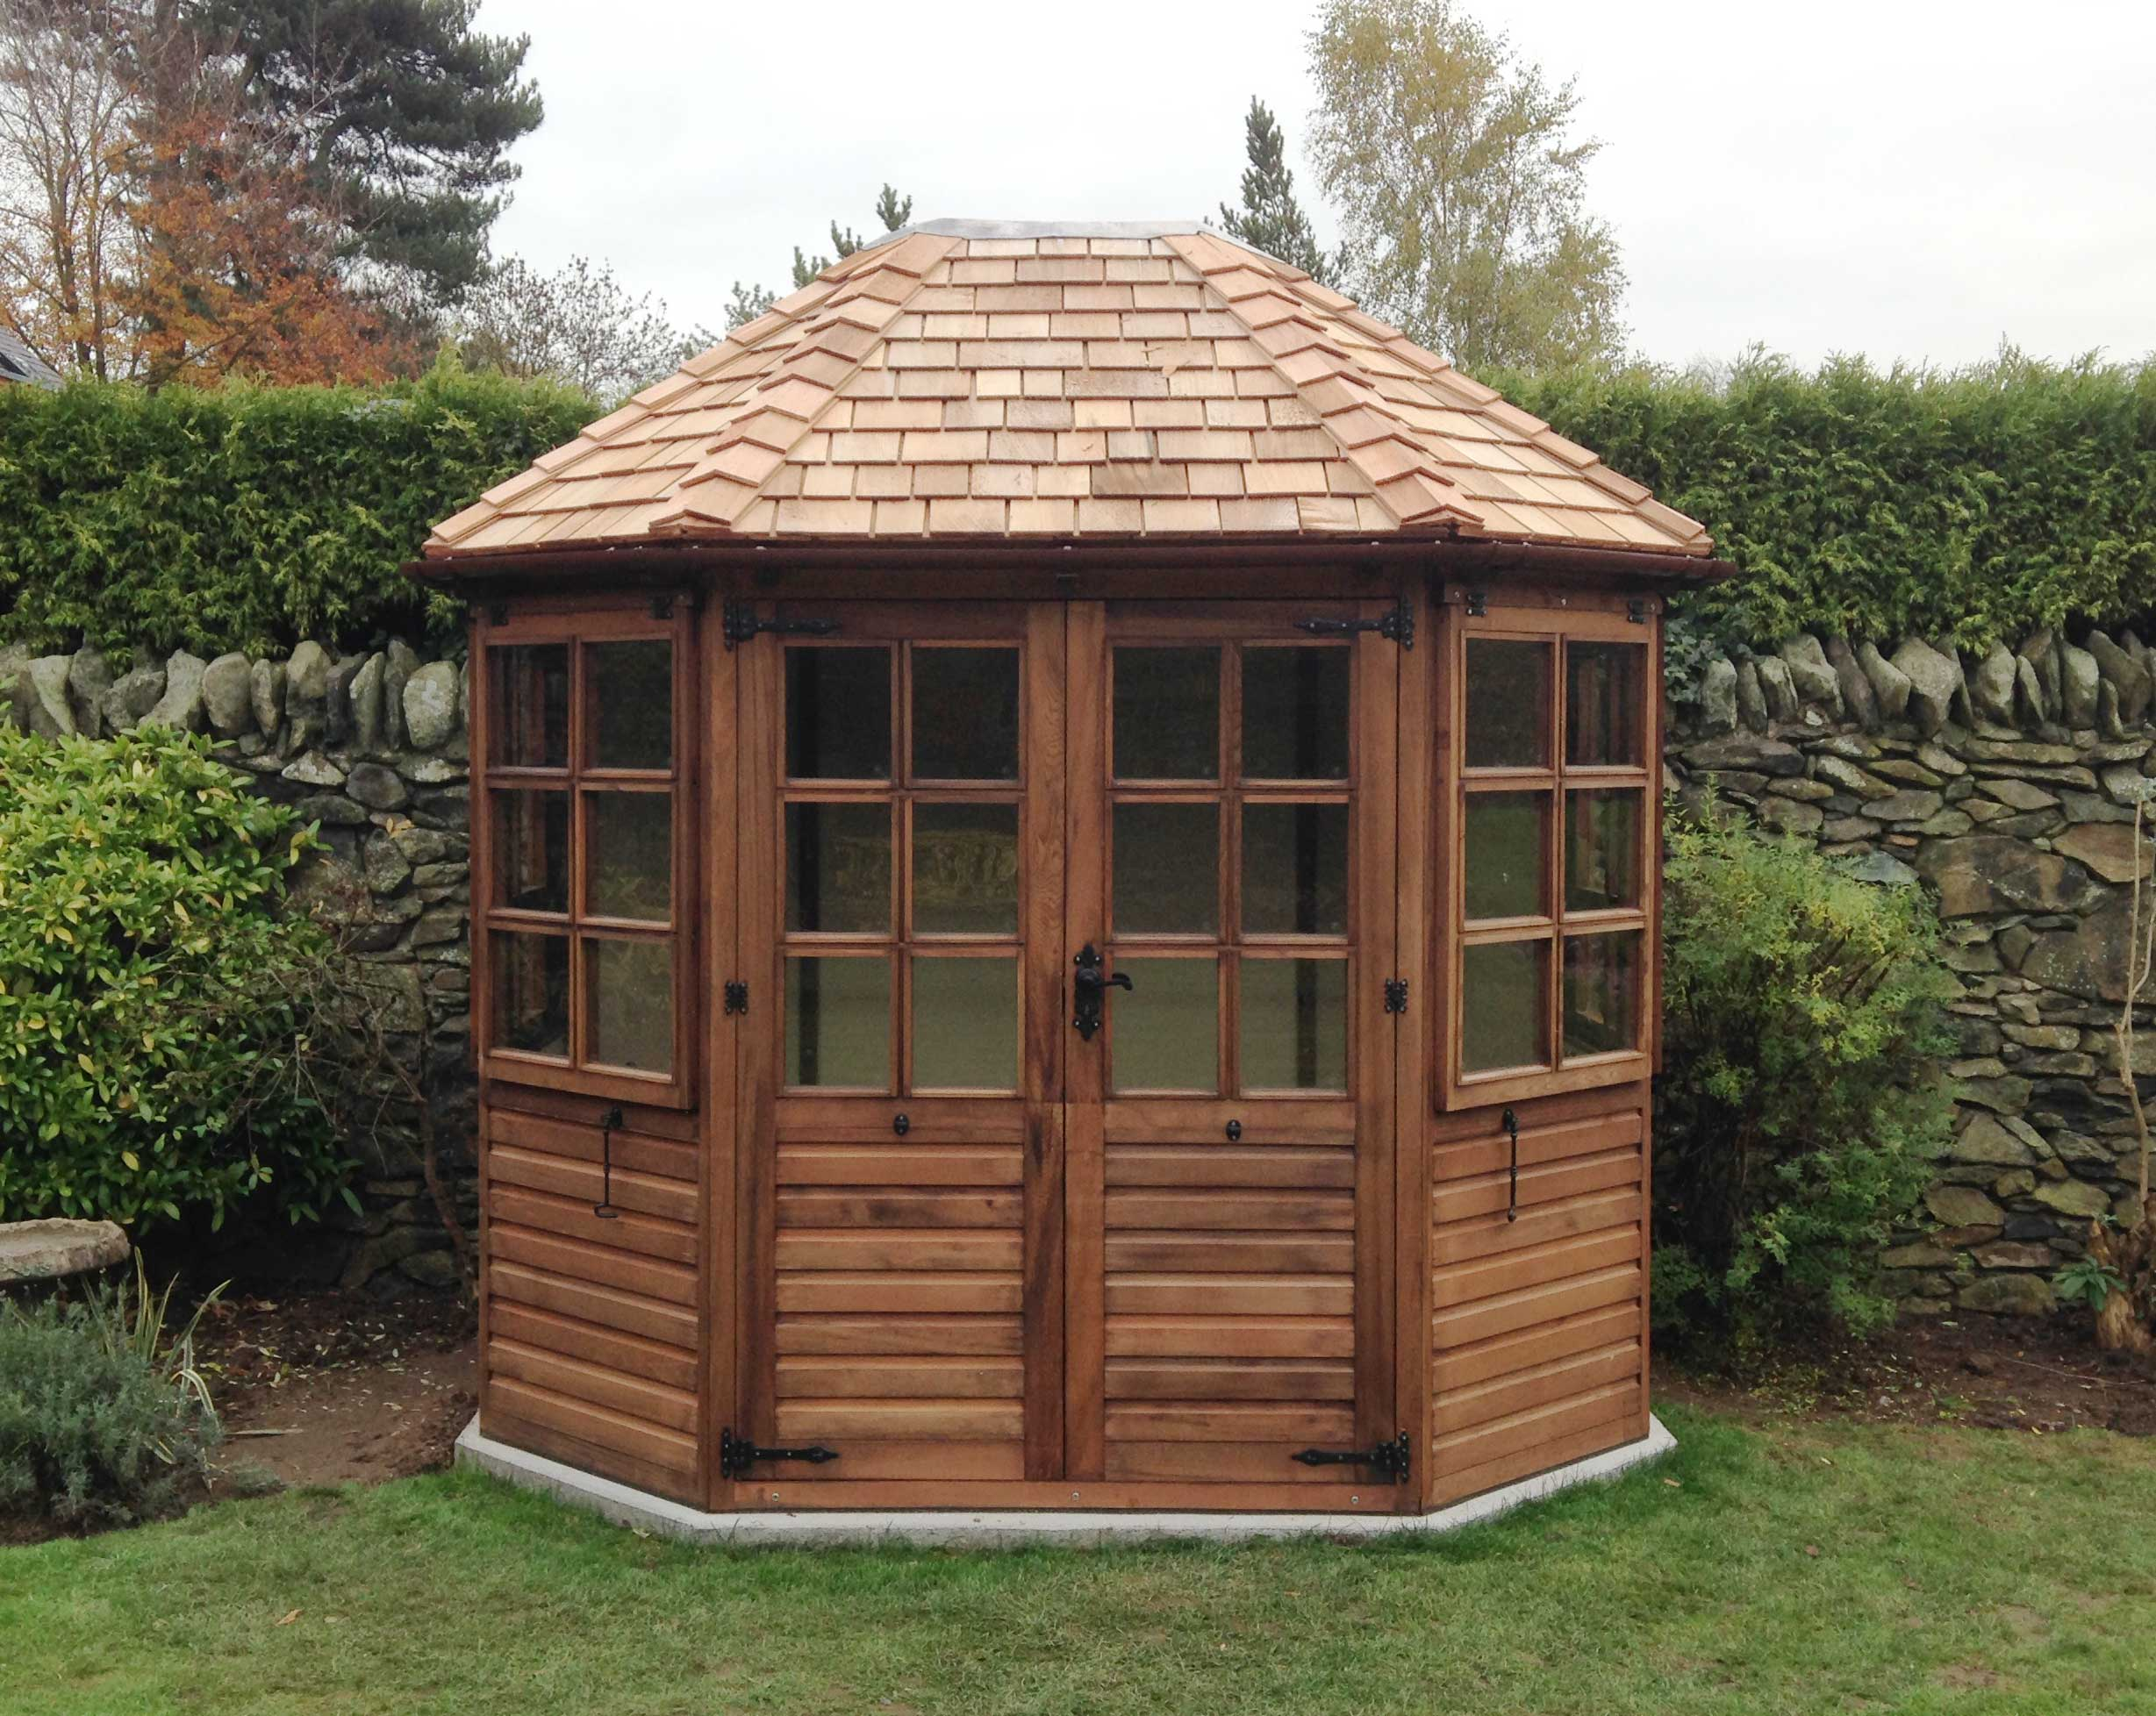 Octagonal summer house woodpecker joinery uk ltd for Garden designs with summer house